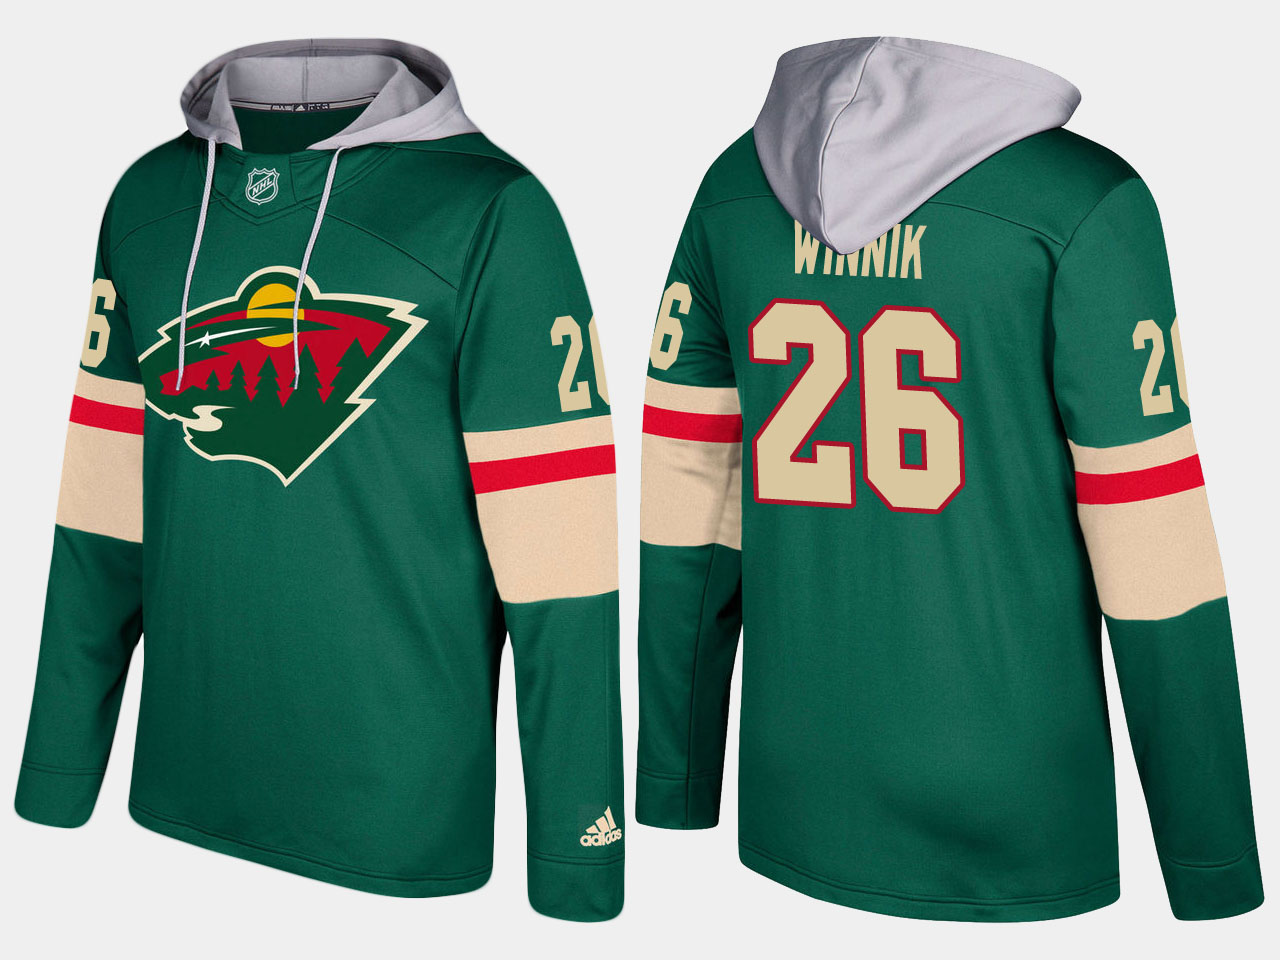 Nike Wild 26 Daniel Winnik Name And Number Green Hoodie